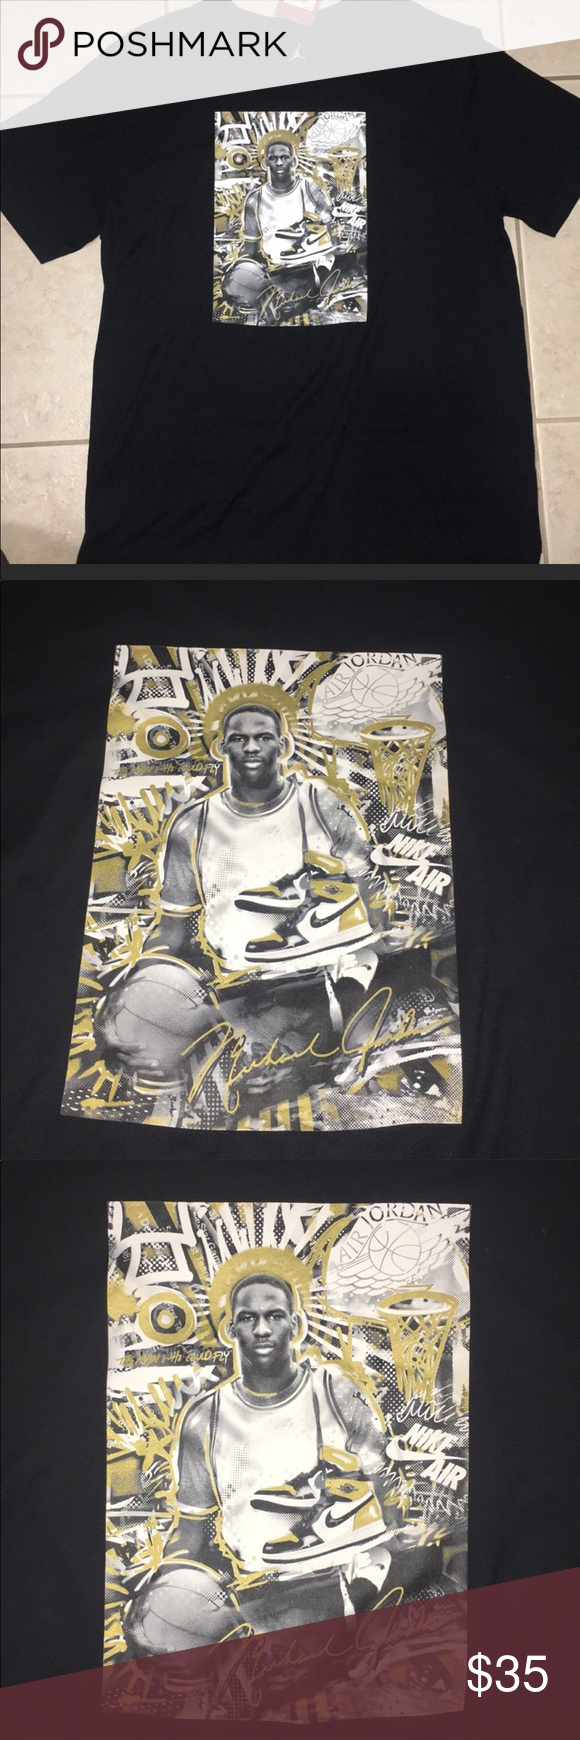 5366917dfb6781 Jordan Retro 1 Gold Toe Black and Gold T Shirt Jordan Retro 1 Gold Toe  Exclusive Nike Air Shirt Brand New With Tags Size  Small Hard to find Jordan  1 Shirt ...